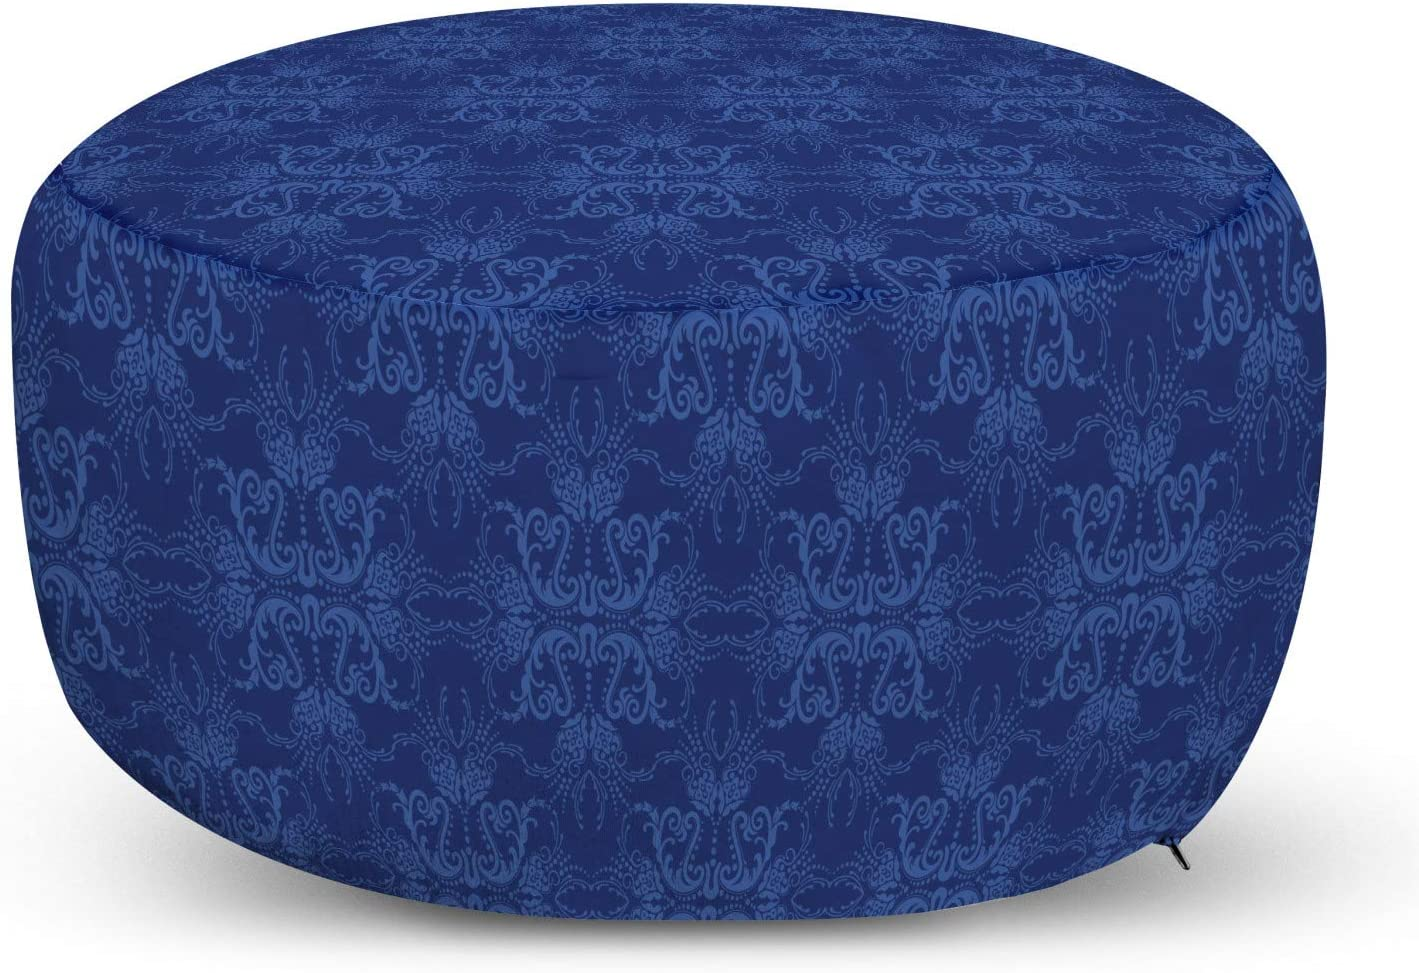 Ambesonne Navy Azure Blue Ottoman Pouf, Antique Baroque Damask Inspired Abstract Flowers Ornamental Victorian Garden, Decorative Soft Foot Rest with Removable Cover Living Room and Bedroom, Azure Blue